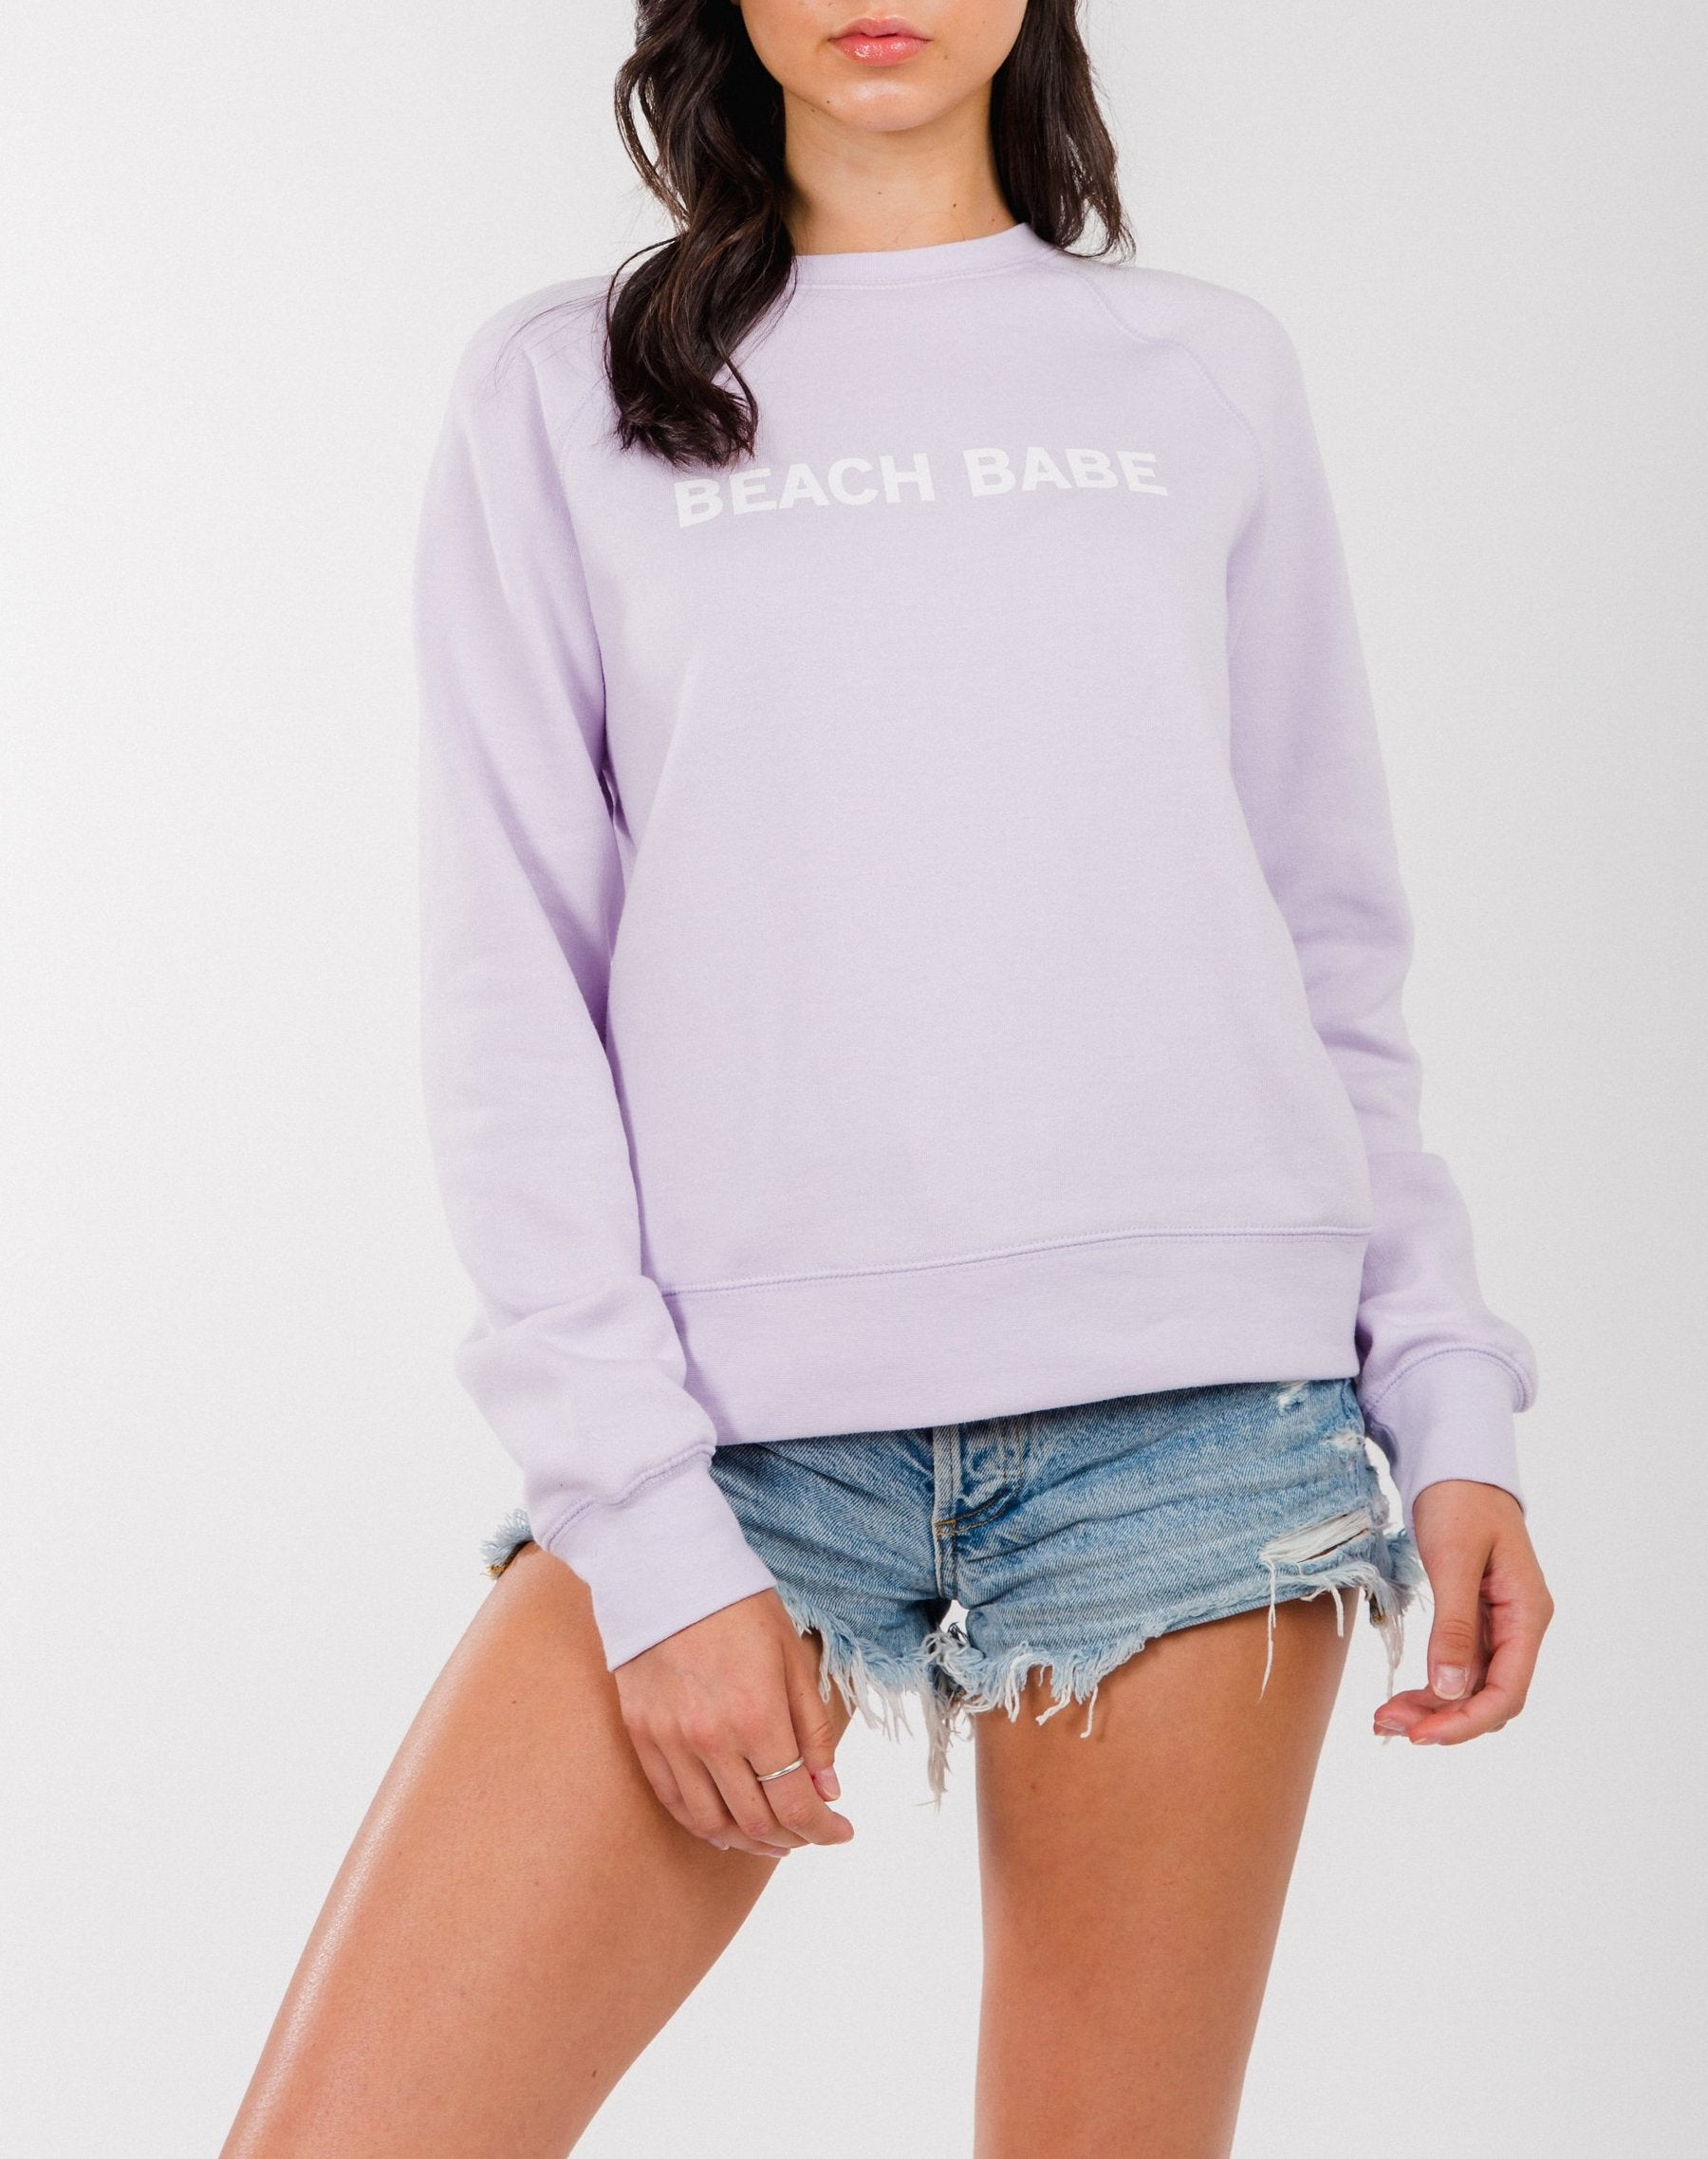 """BEACH BABE"" Middle Sister Crew 